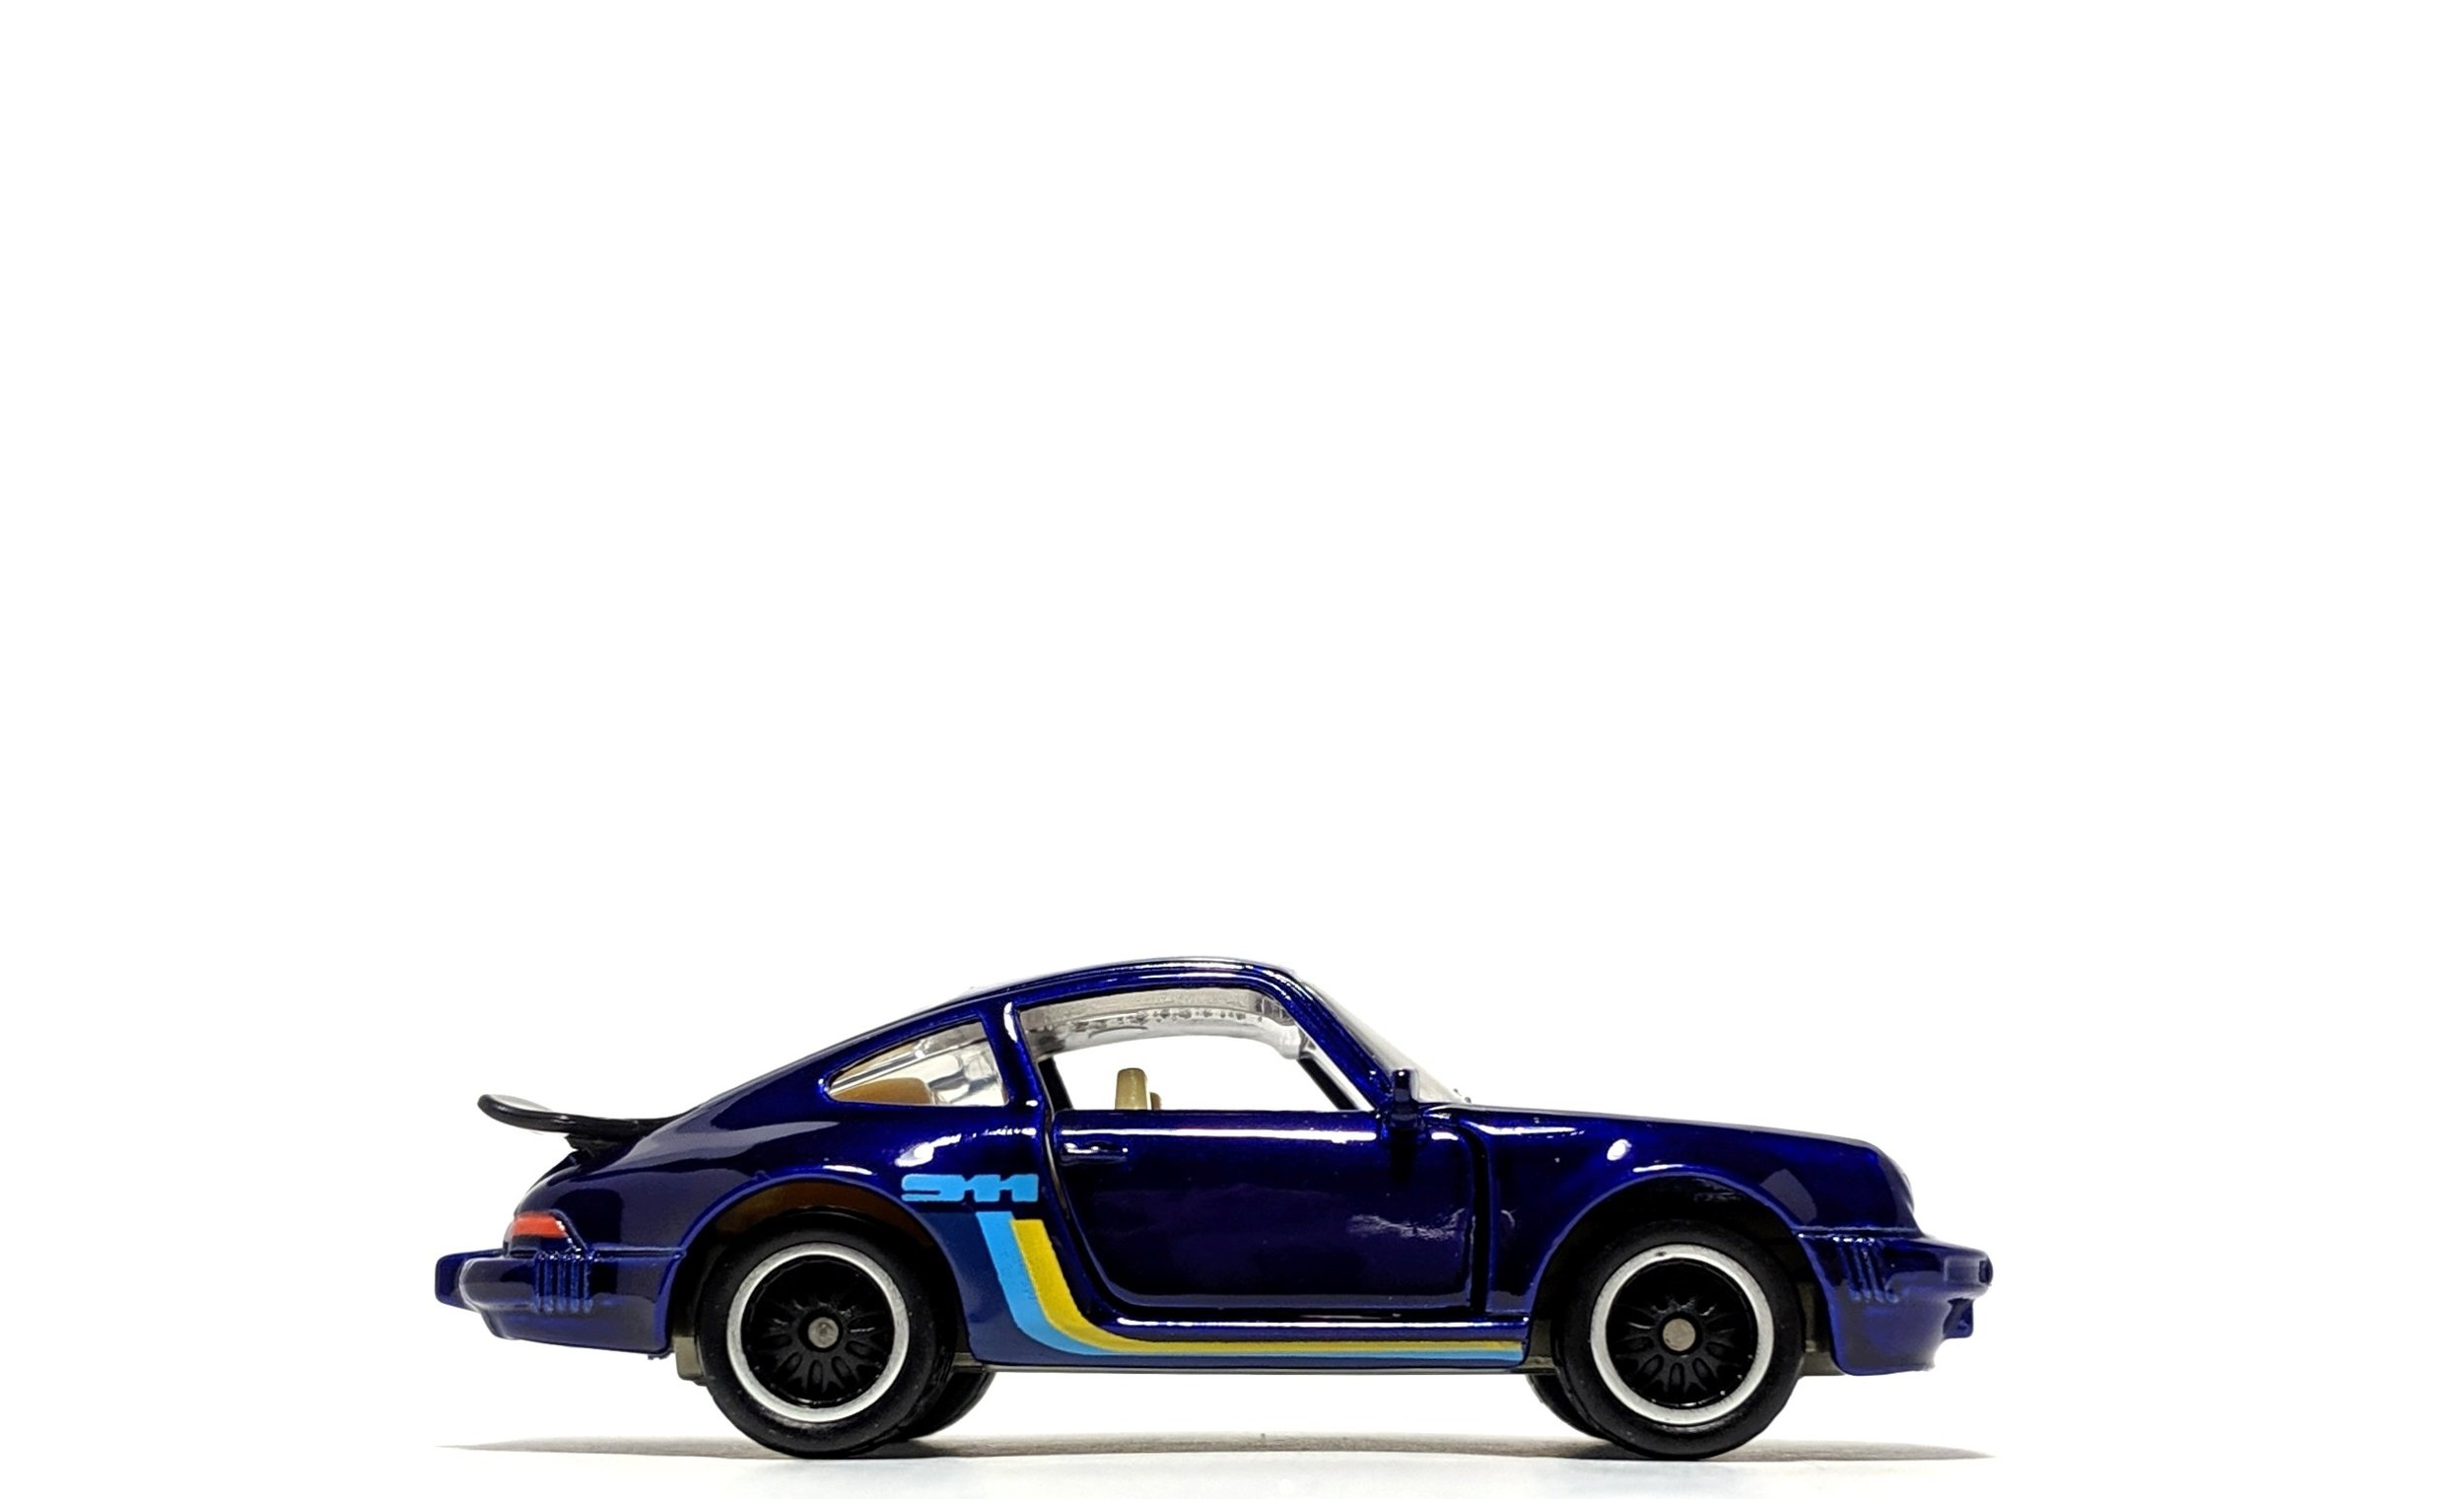 '80 Porsche 911 Turbo - Matchbox 50th Anniversary Superfast